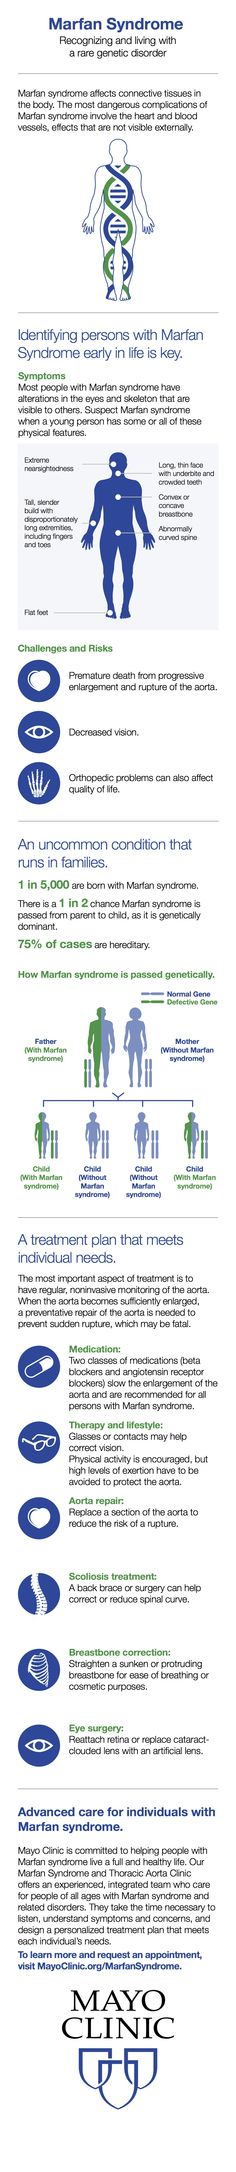 Marfan Syndrome: Recognizing and living with a rare genetic disorder.